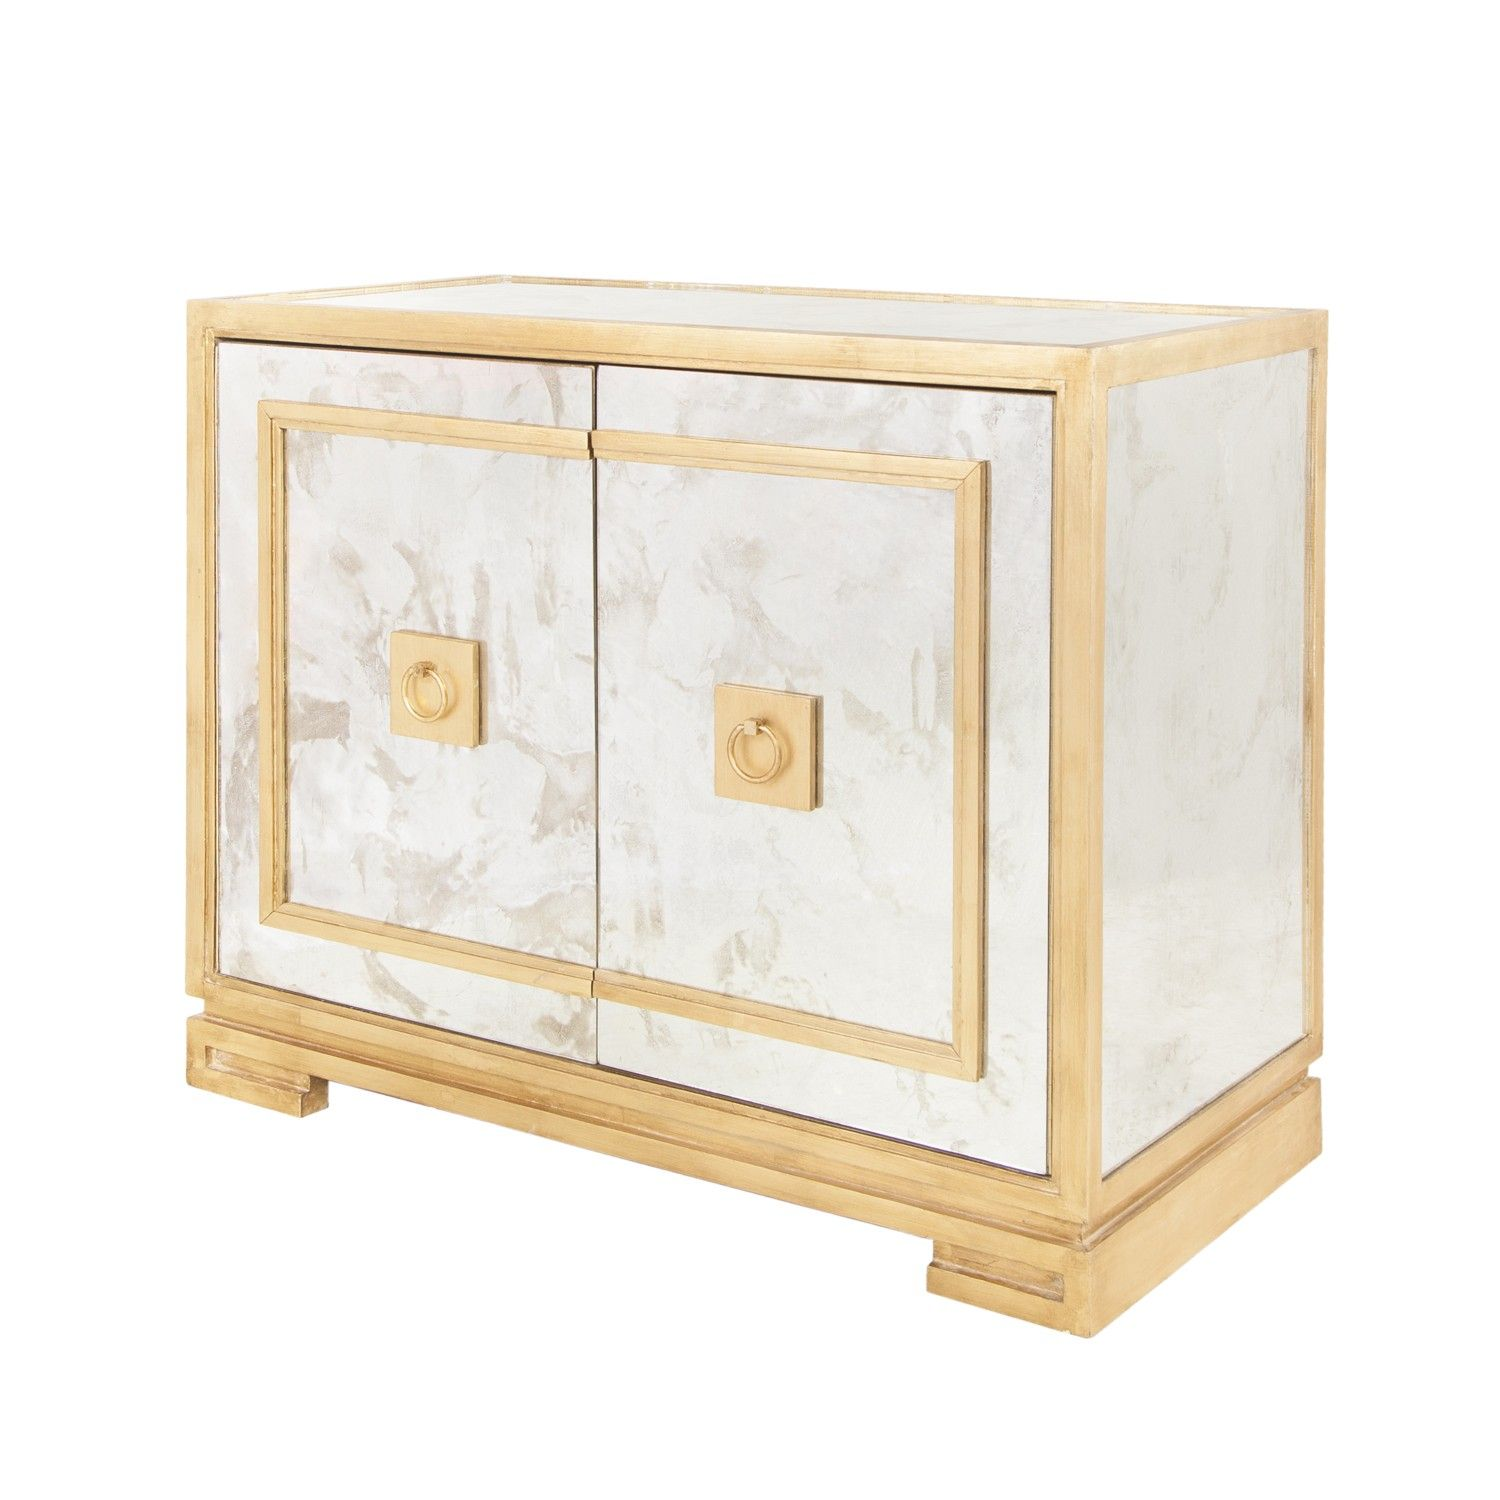 OPHELIA G - Buffets & Media Consoles - Cabinets & Chests - Collection W 40 D - OPHELIA G - Buffets & Media Consoles - Cabinets & Chests